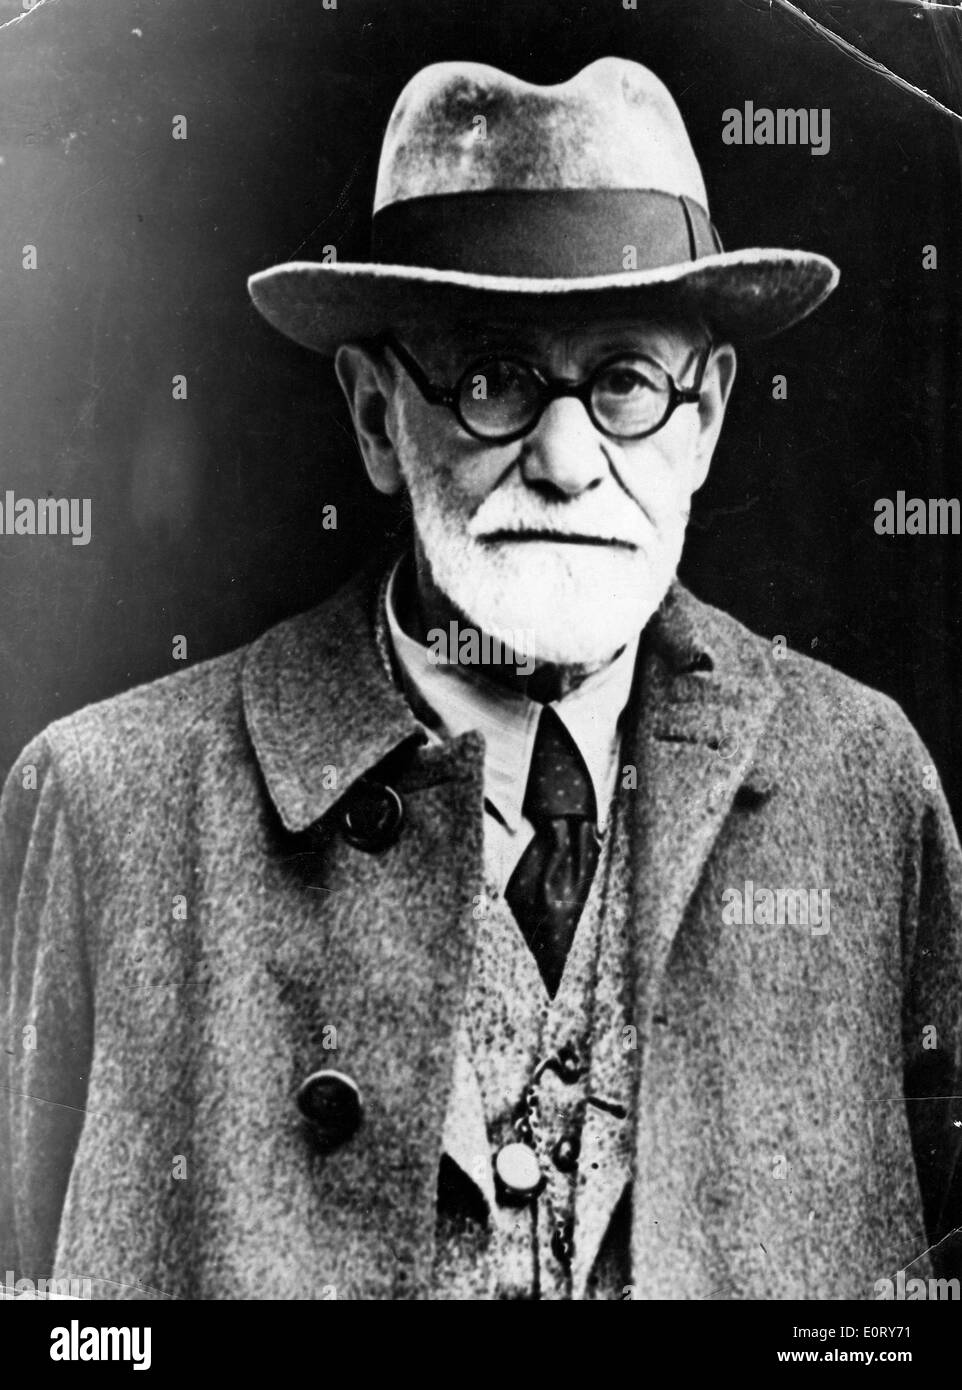 Close-up of Sigmund Freud in a coat and hat - Stock Image